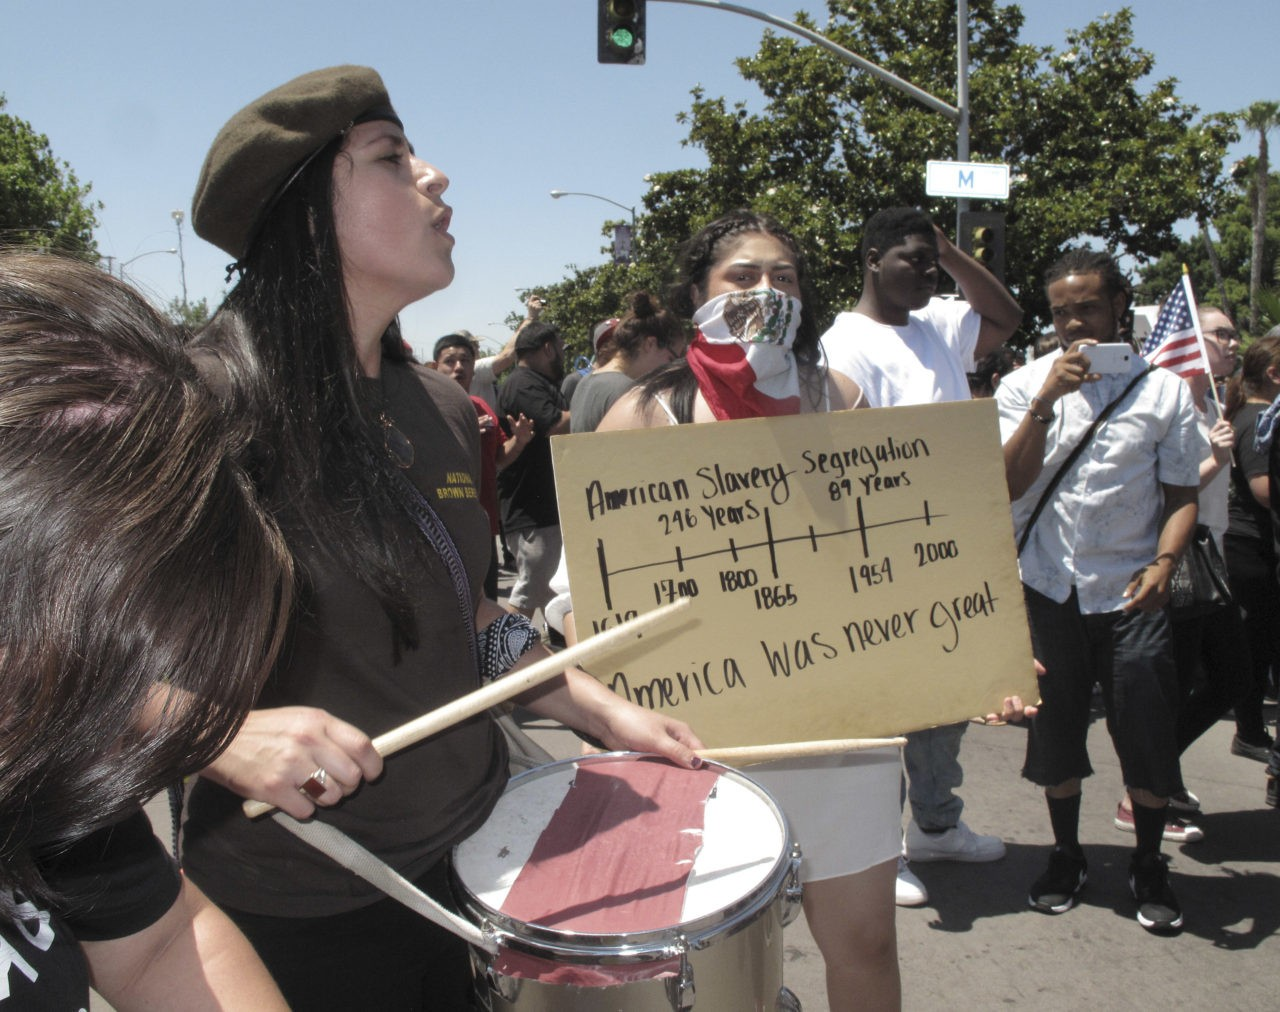 Several hundred people protest outside a campaign rally for Republican presidential candidate Donald Trump in Fresno, Calif., on Friday, May 27, 2016. The largely young and Latino crowd beat drums, chanted anti-Trump slogans and marched around the arena in downtown Fresno. Protesters were met by police officers wearing riot gear, who arrested two people after the rally on suspicion of unlawful assembly. (AP Photo/Scott Smith)